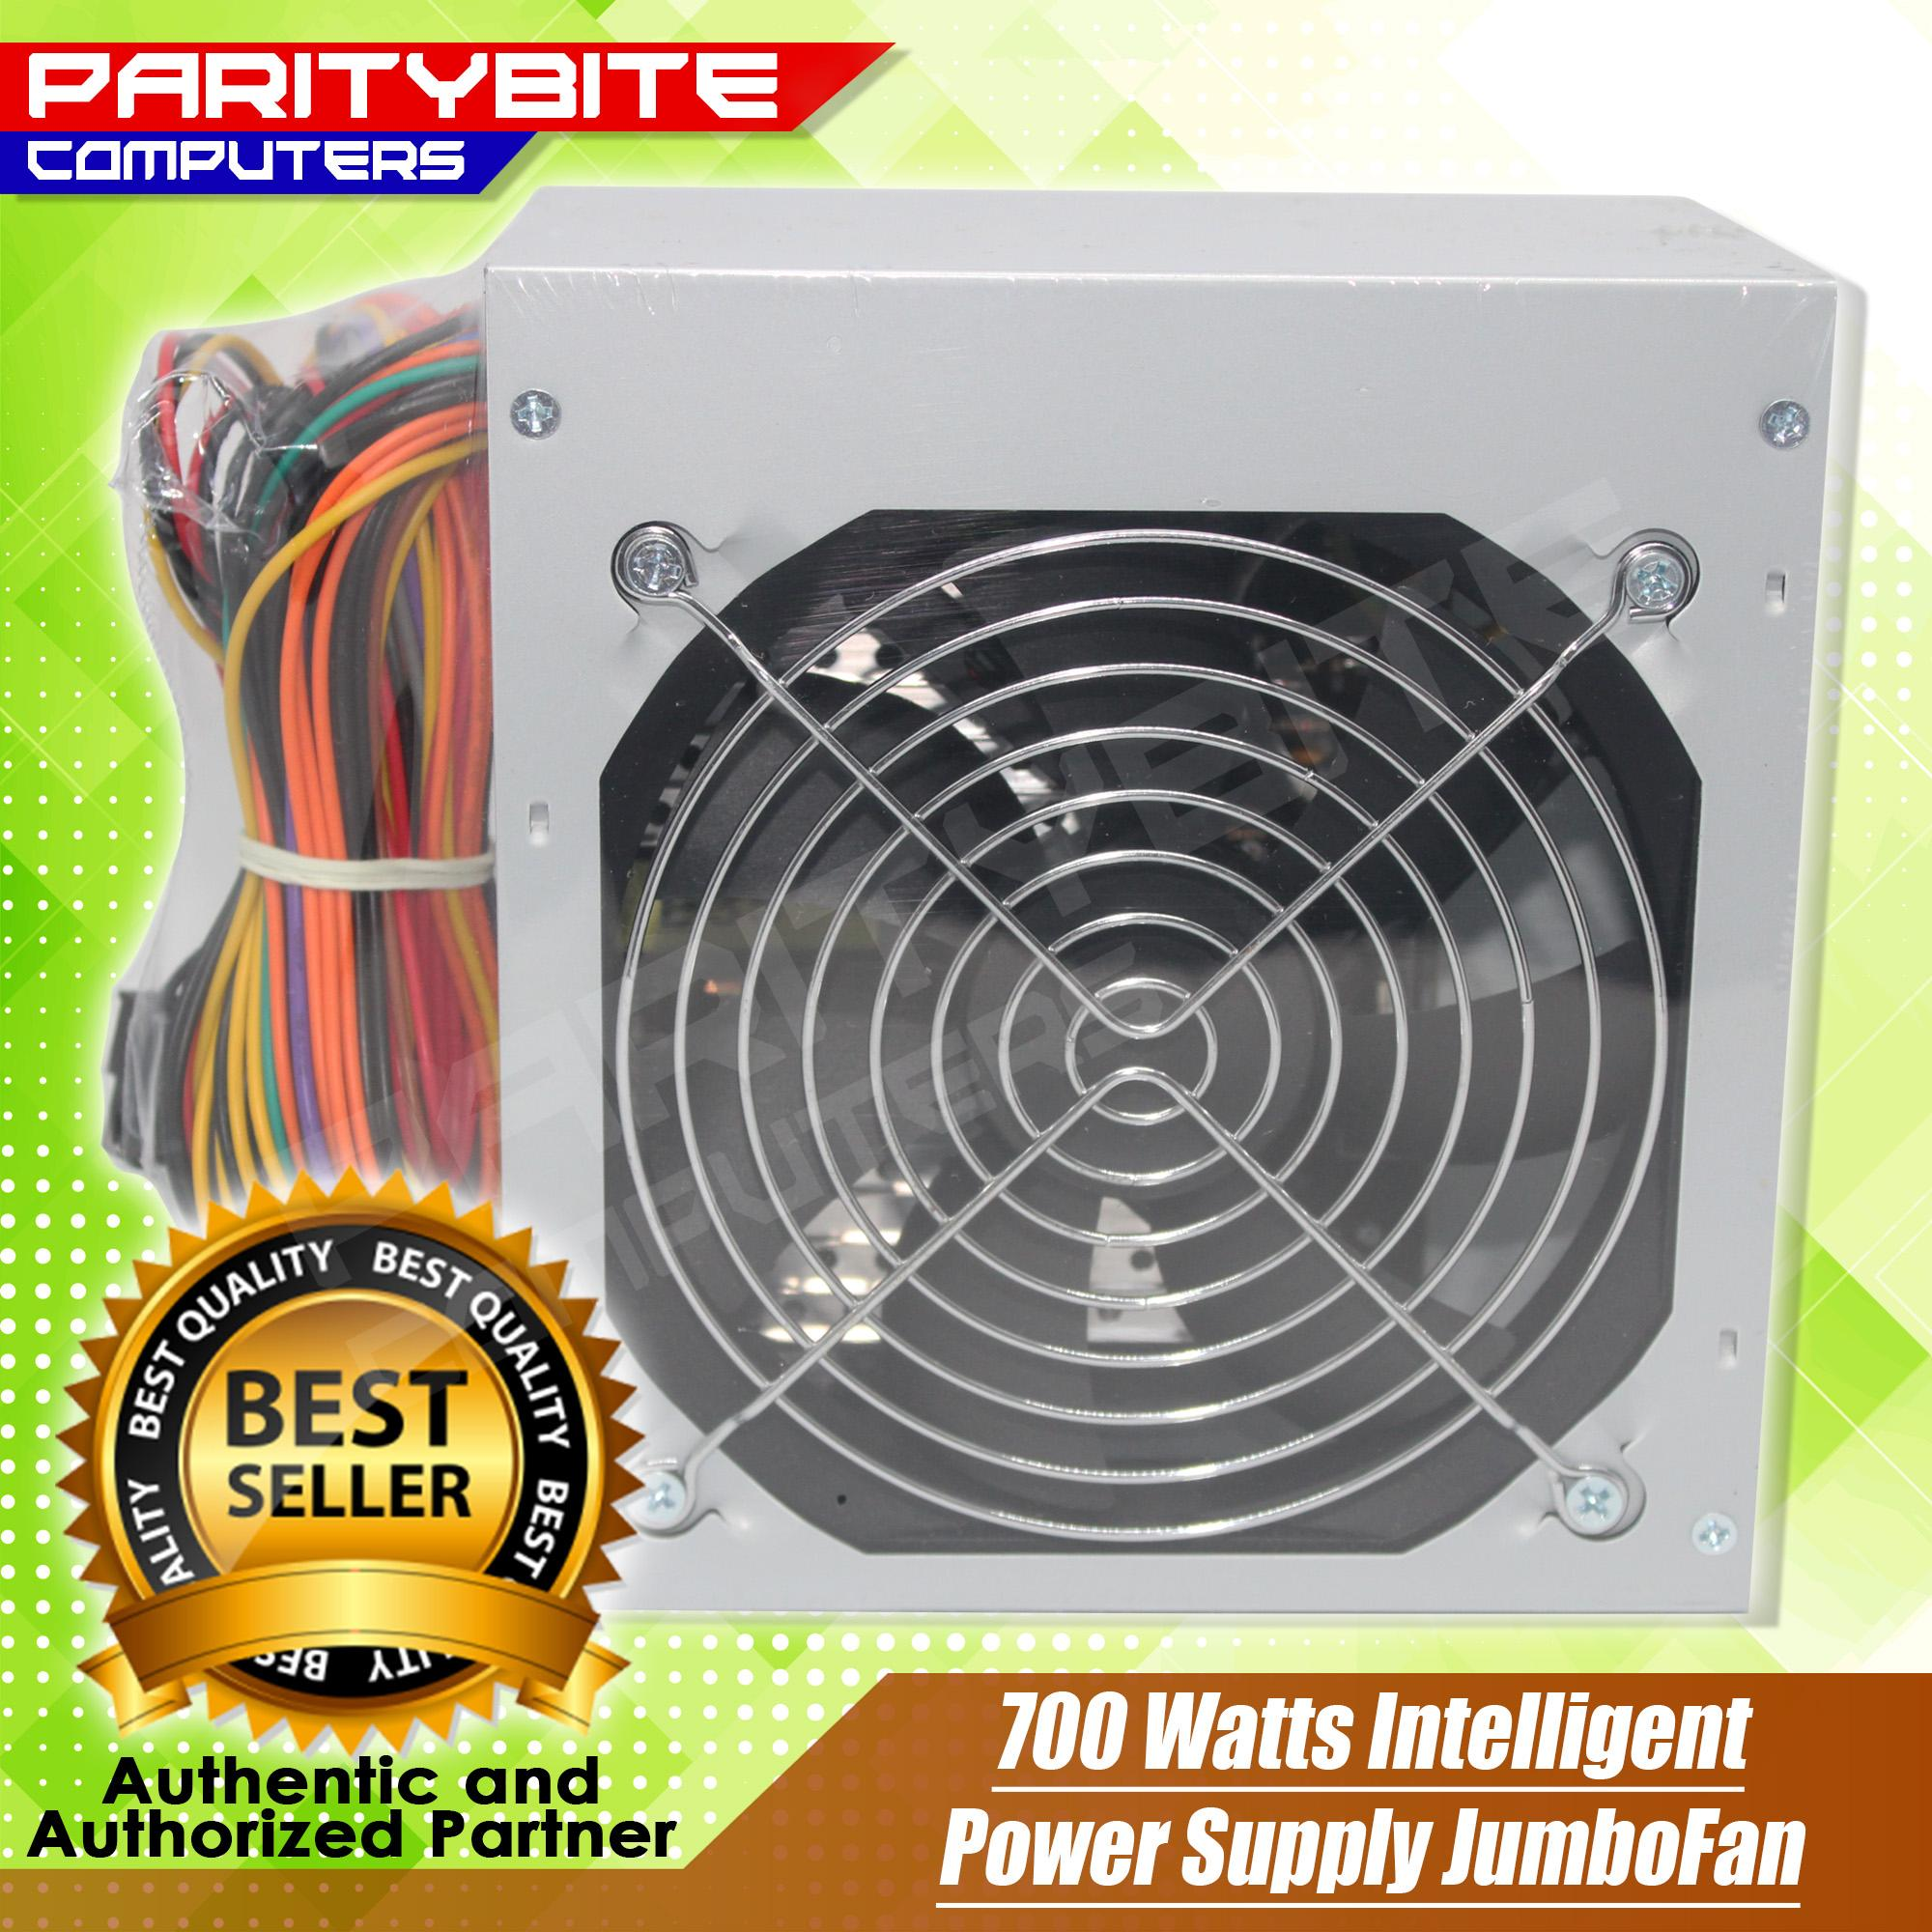 700 Watts Intelligent Power Supply Jumbofan By Paritybite Computers.